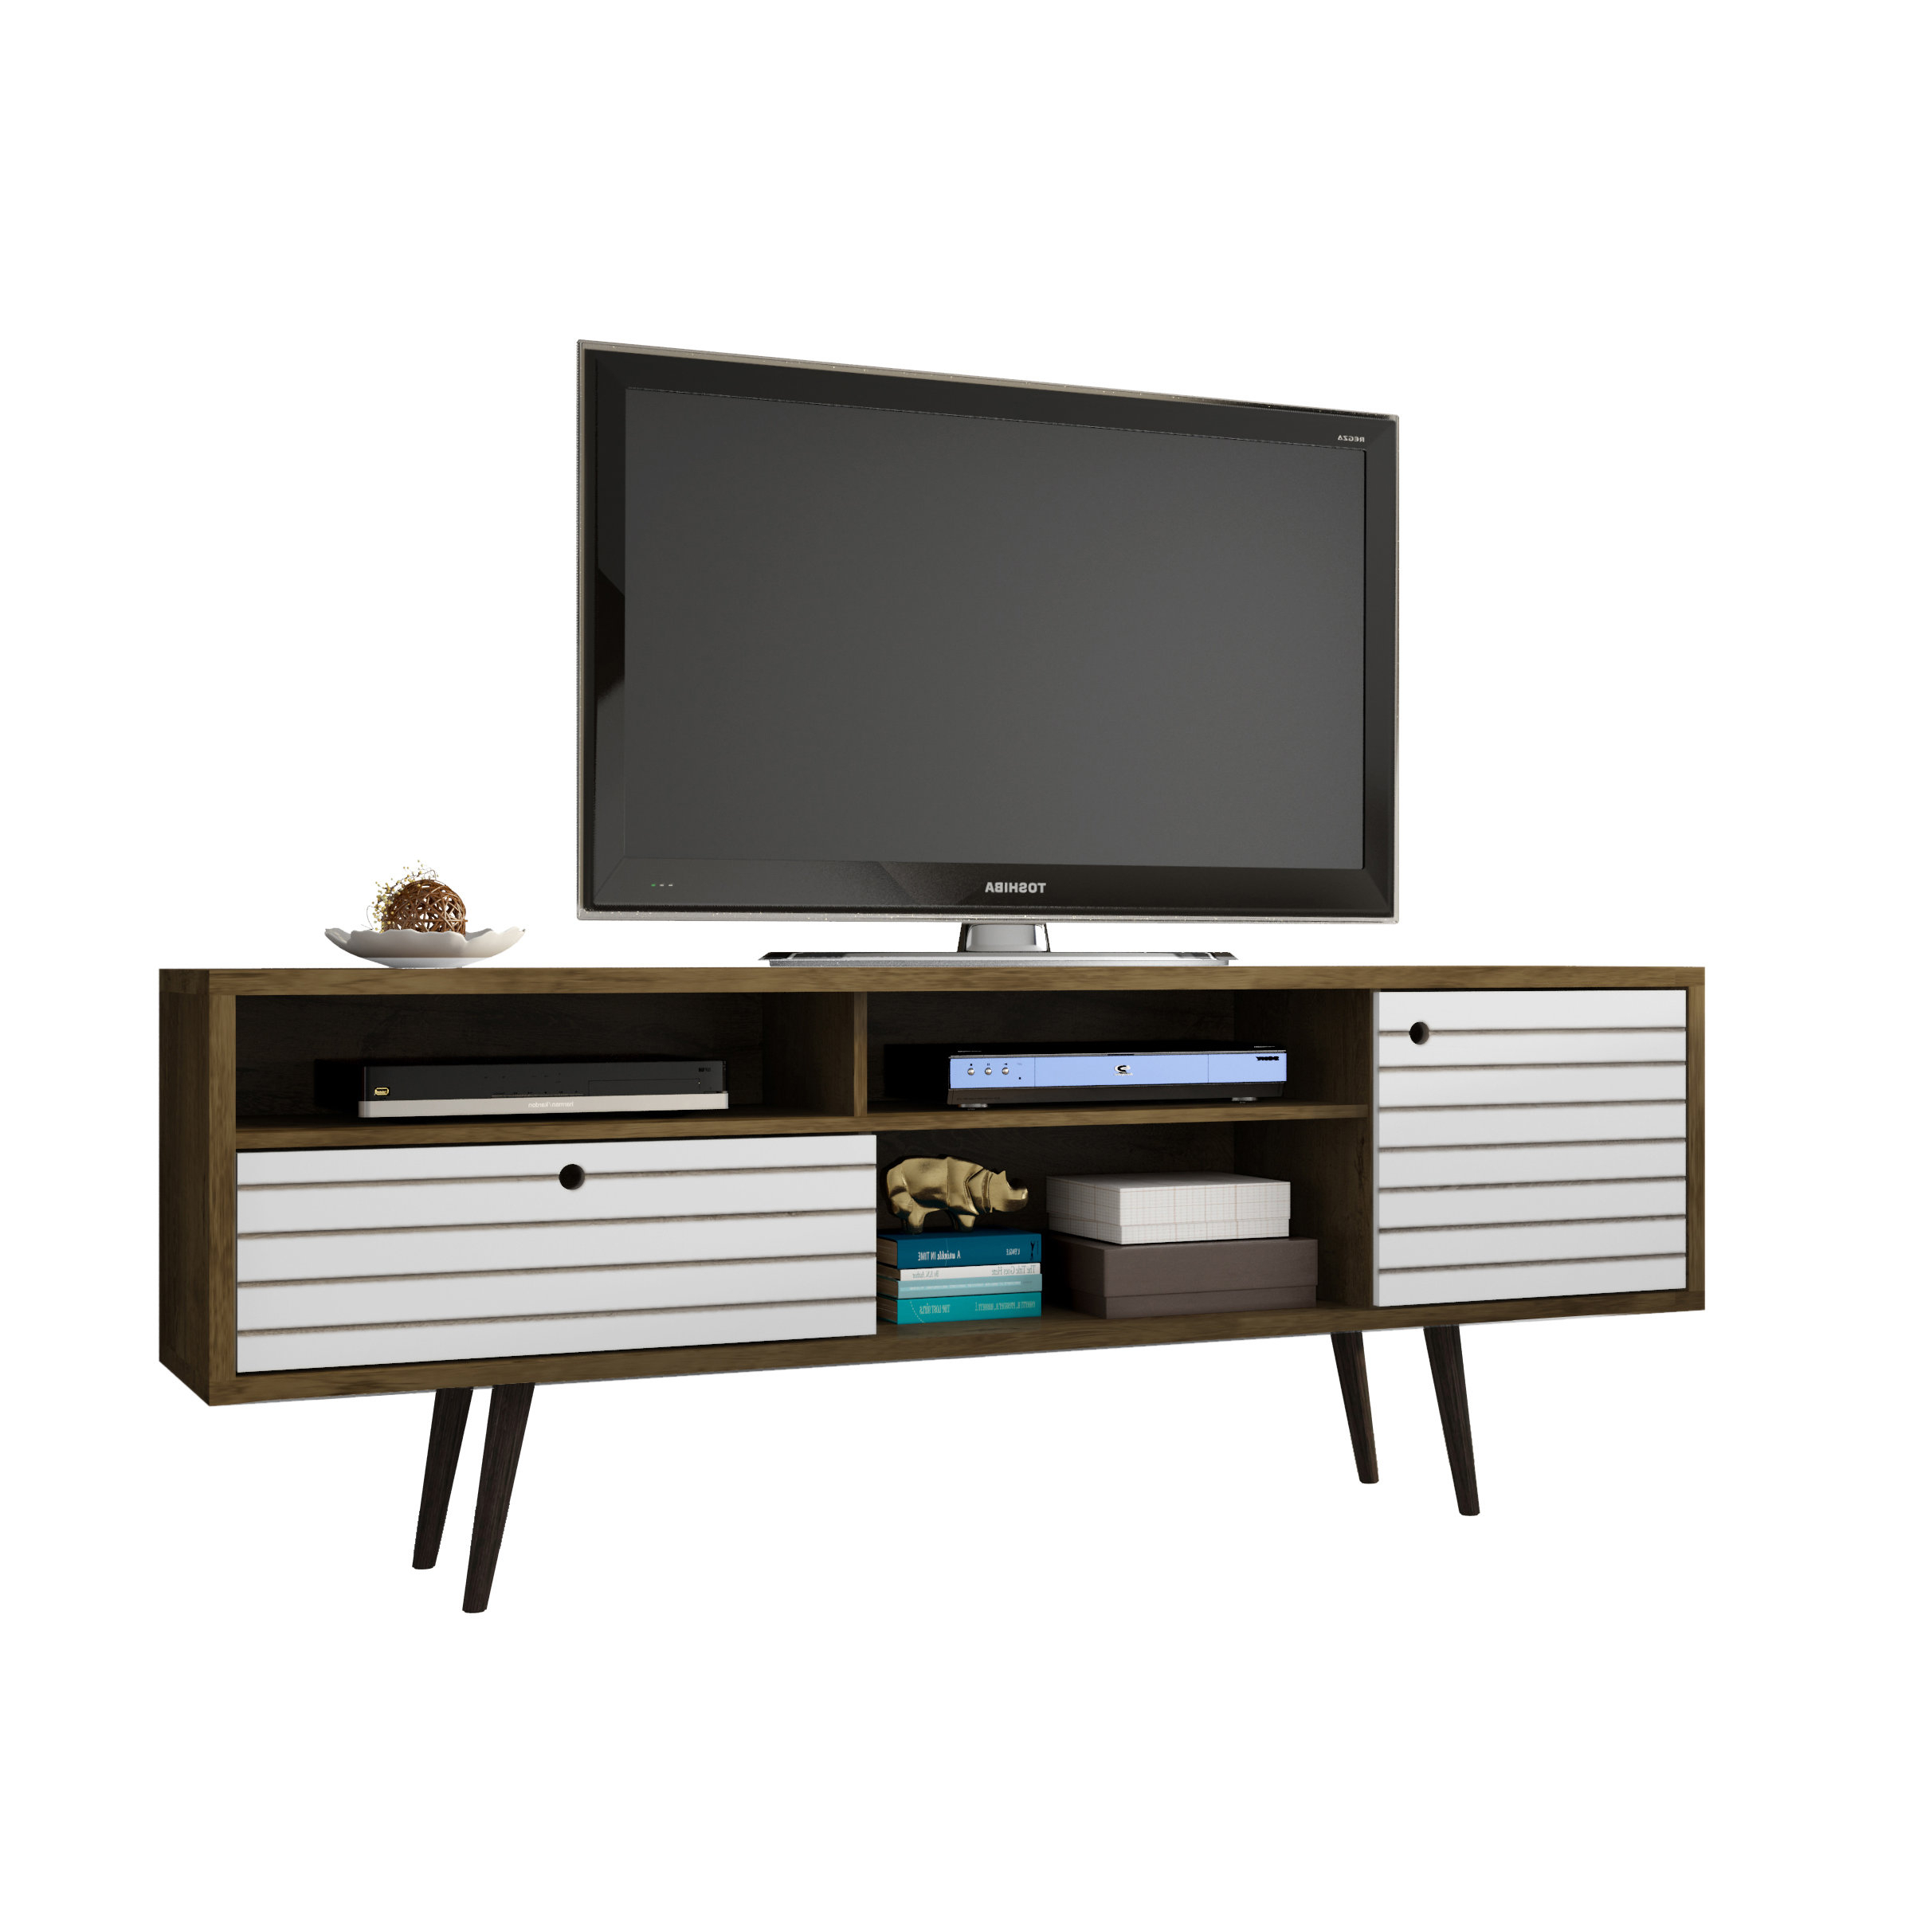 Unique Tv Stands For Flat Screens Inside Well Known Modern Tv Stands & Entertainment Centers (View 6 of 20)